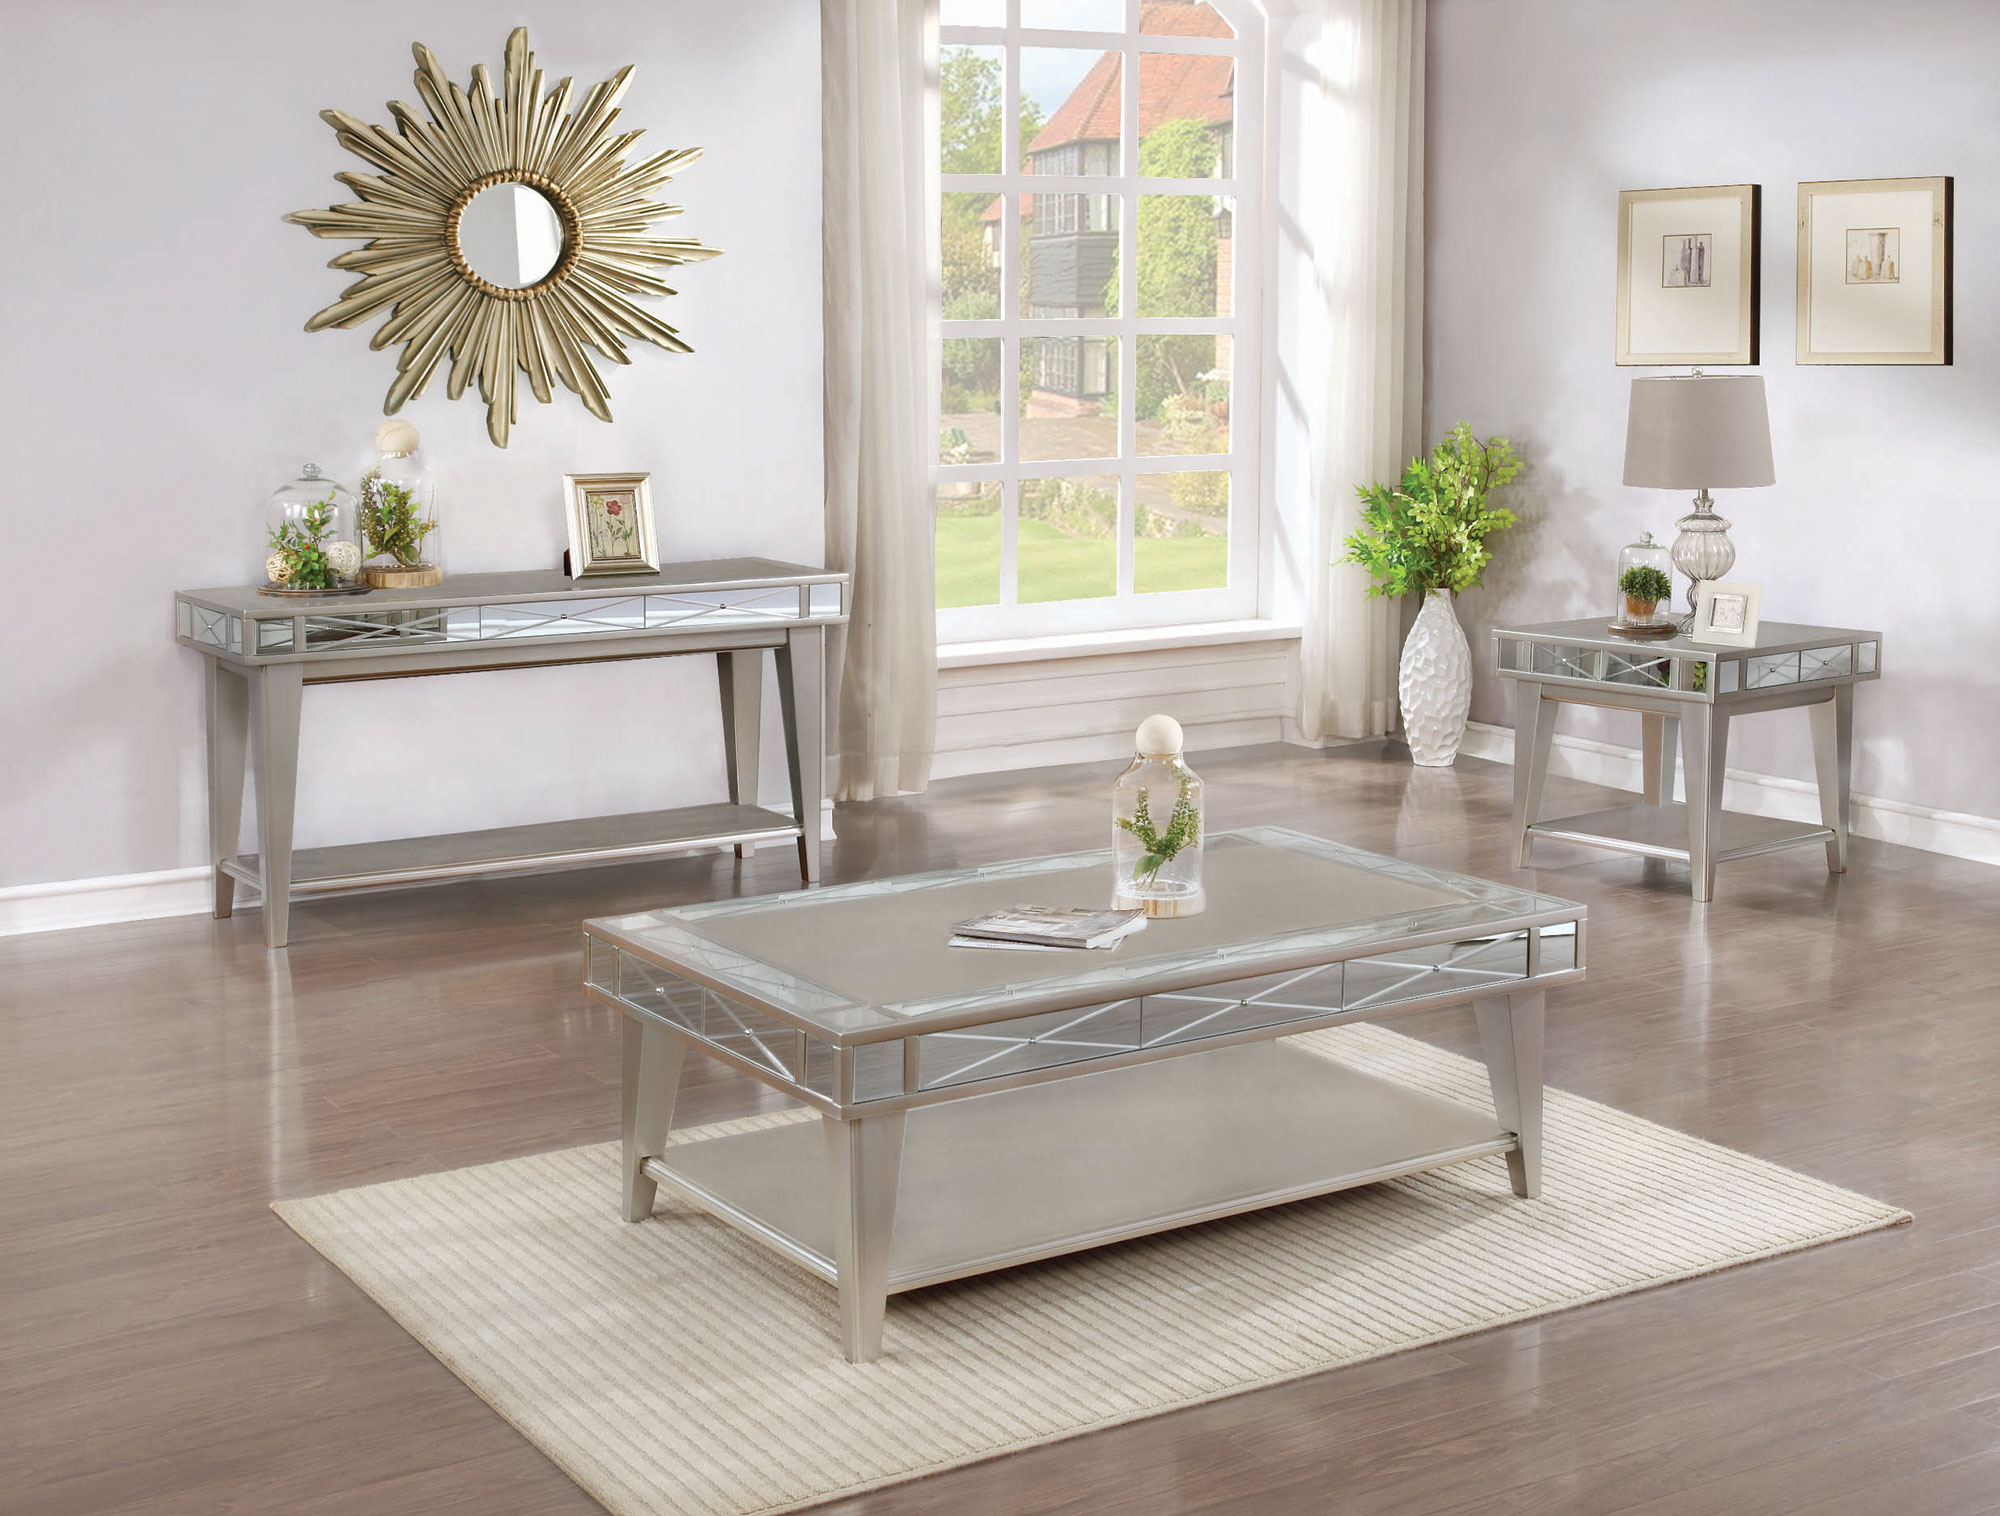 Zinna Mercury Bling Coffee Table Collection Las Vegas